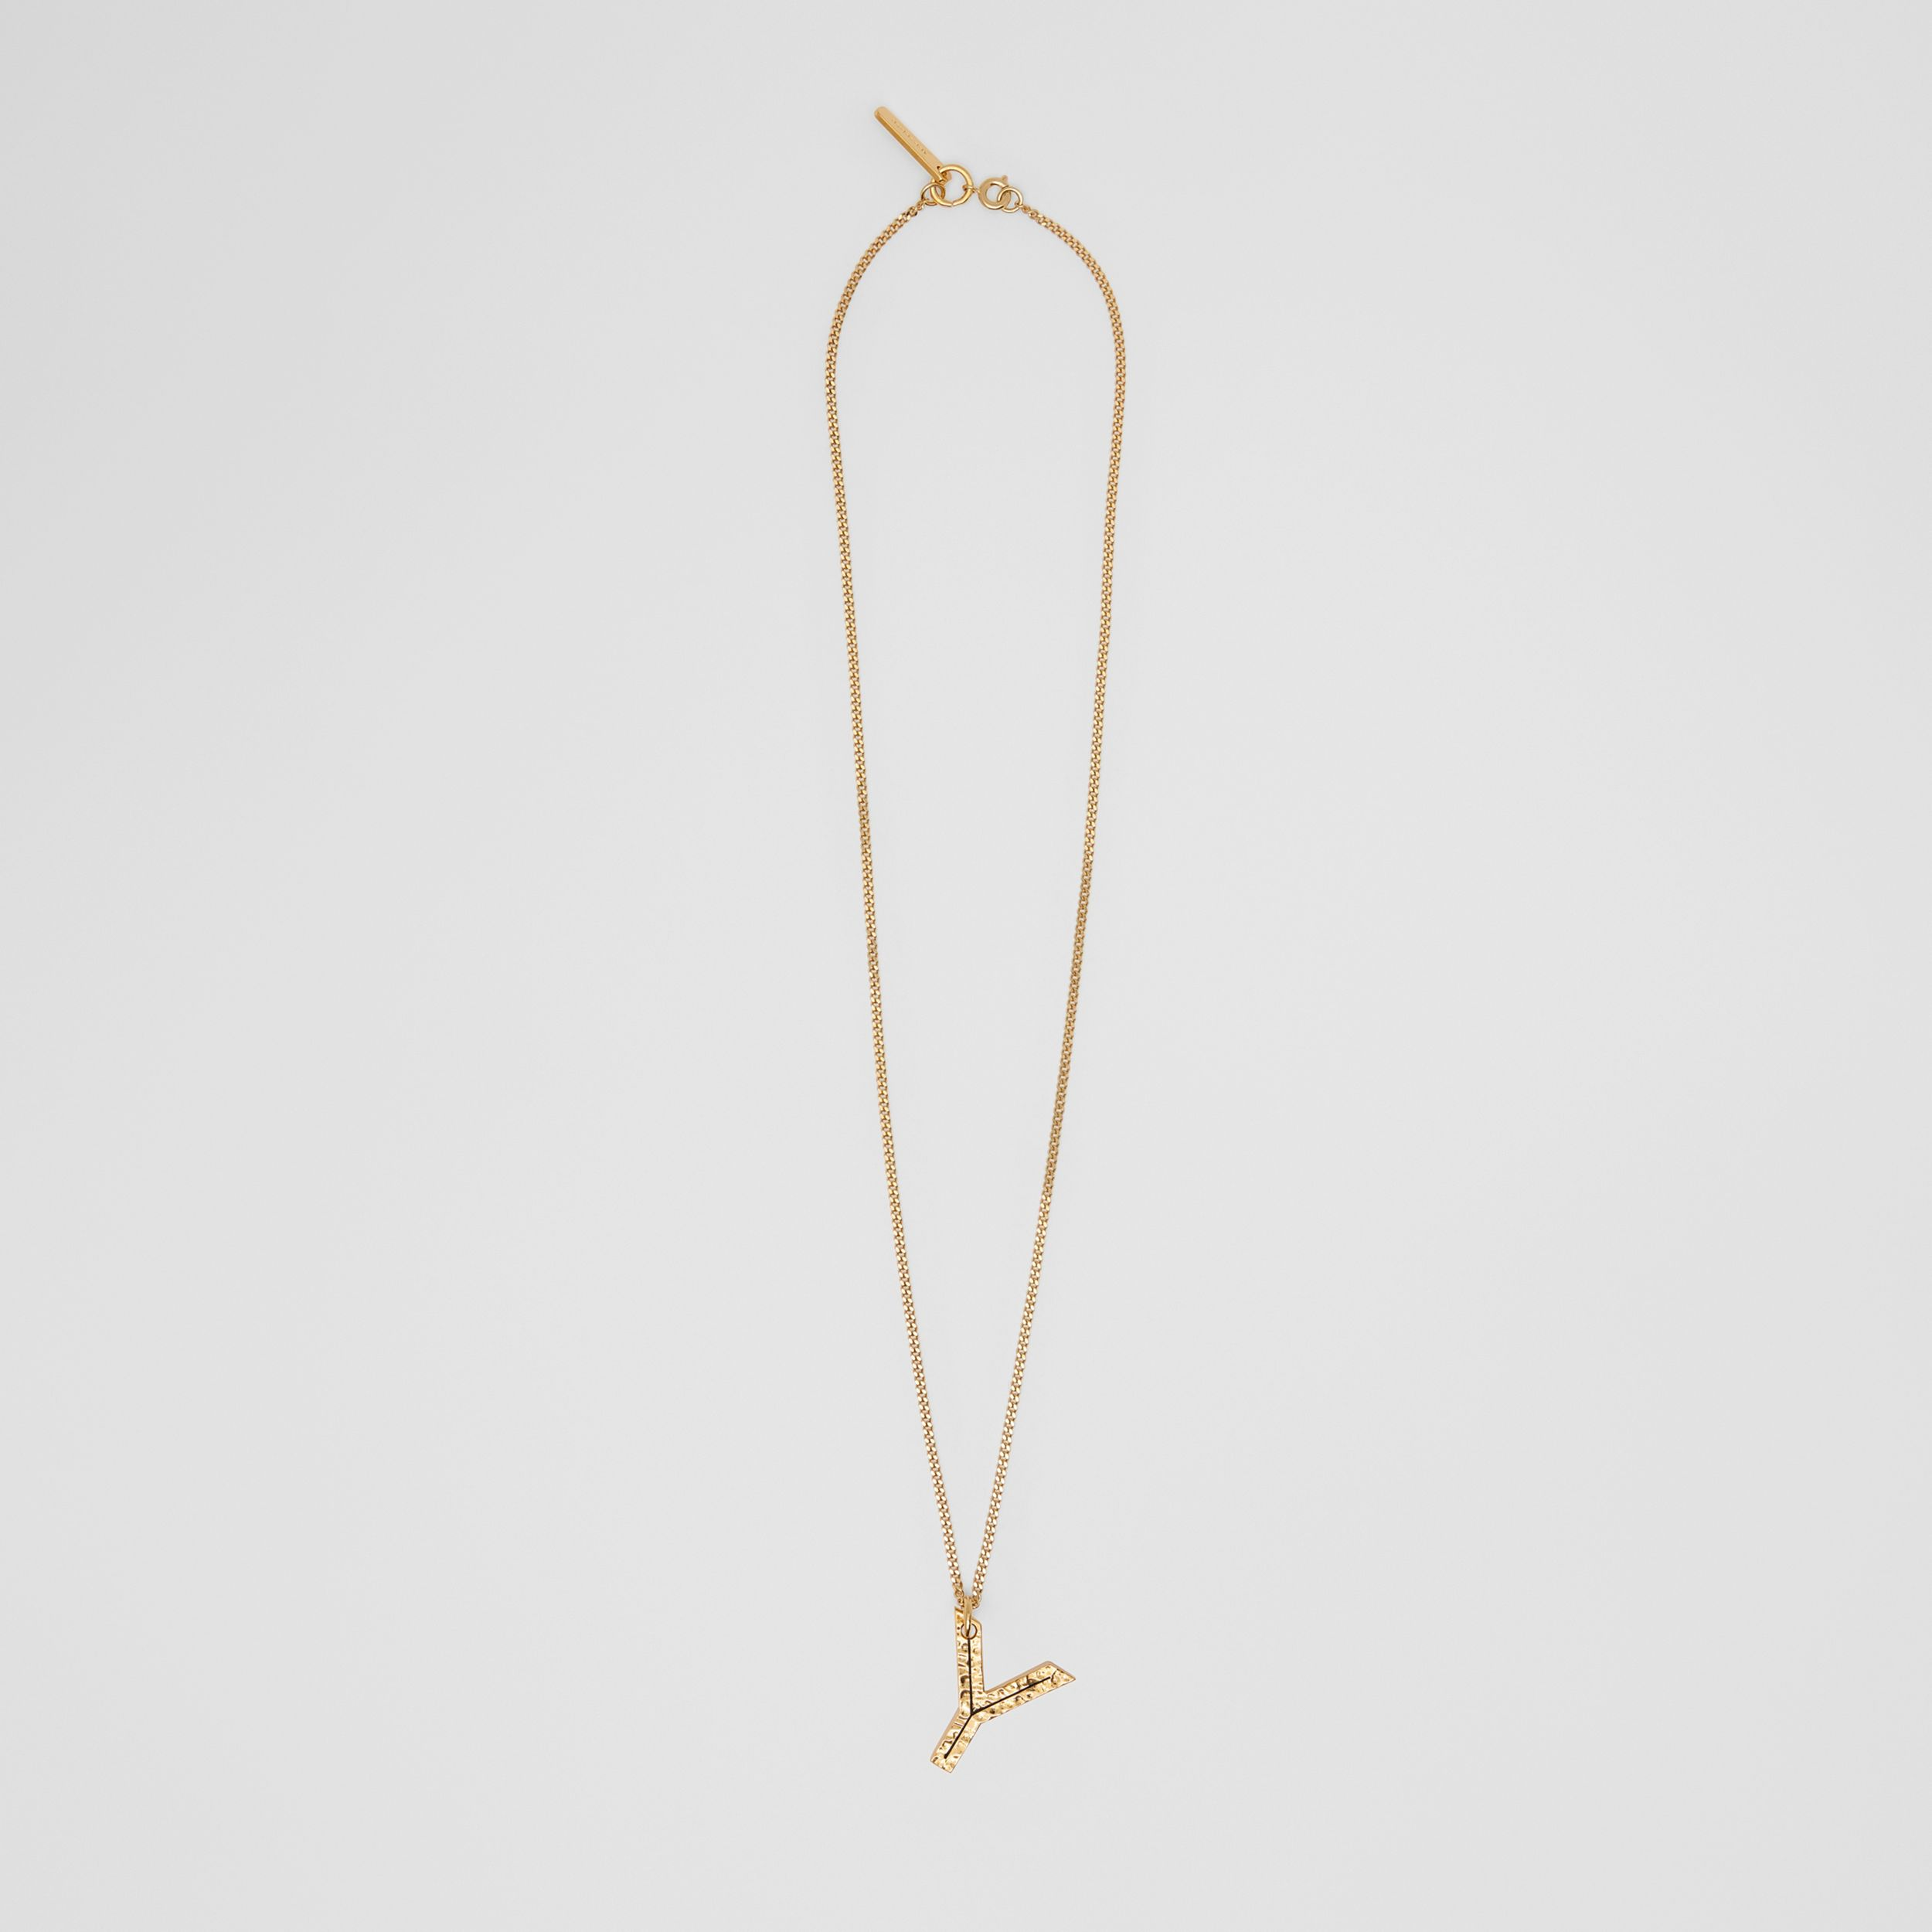 'Y' Alphabet Charm Gold-plated Necklace in Light - Women | Burberry - 1